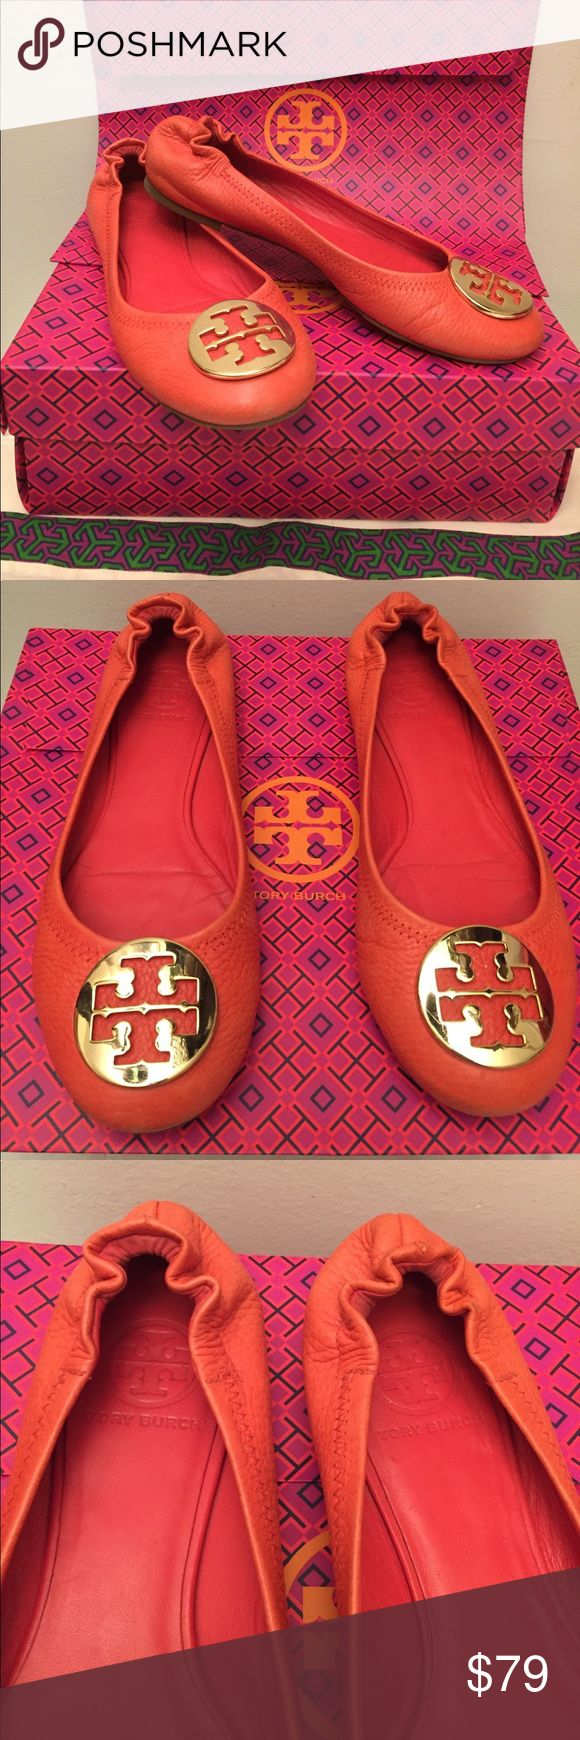 Authentic Tory Burch Reva Flats Used and in good condition. Very fashionable and comfortable. Gold Tory Burch logo with a beautiful orangish/ coral color. Authentic leather, some wear on the back of the shoes and some scratches/wear overall (refer to pictures). Comes with Tory Burch dust bag and gift bag (no box). Tory Burch Shoes Flats & Loafers